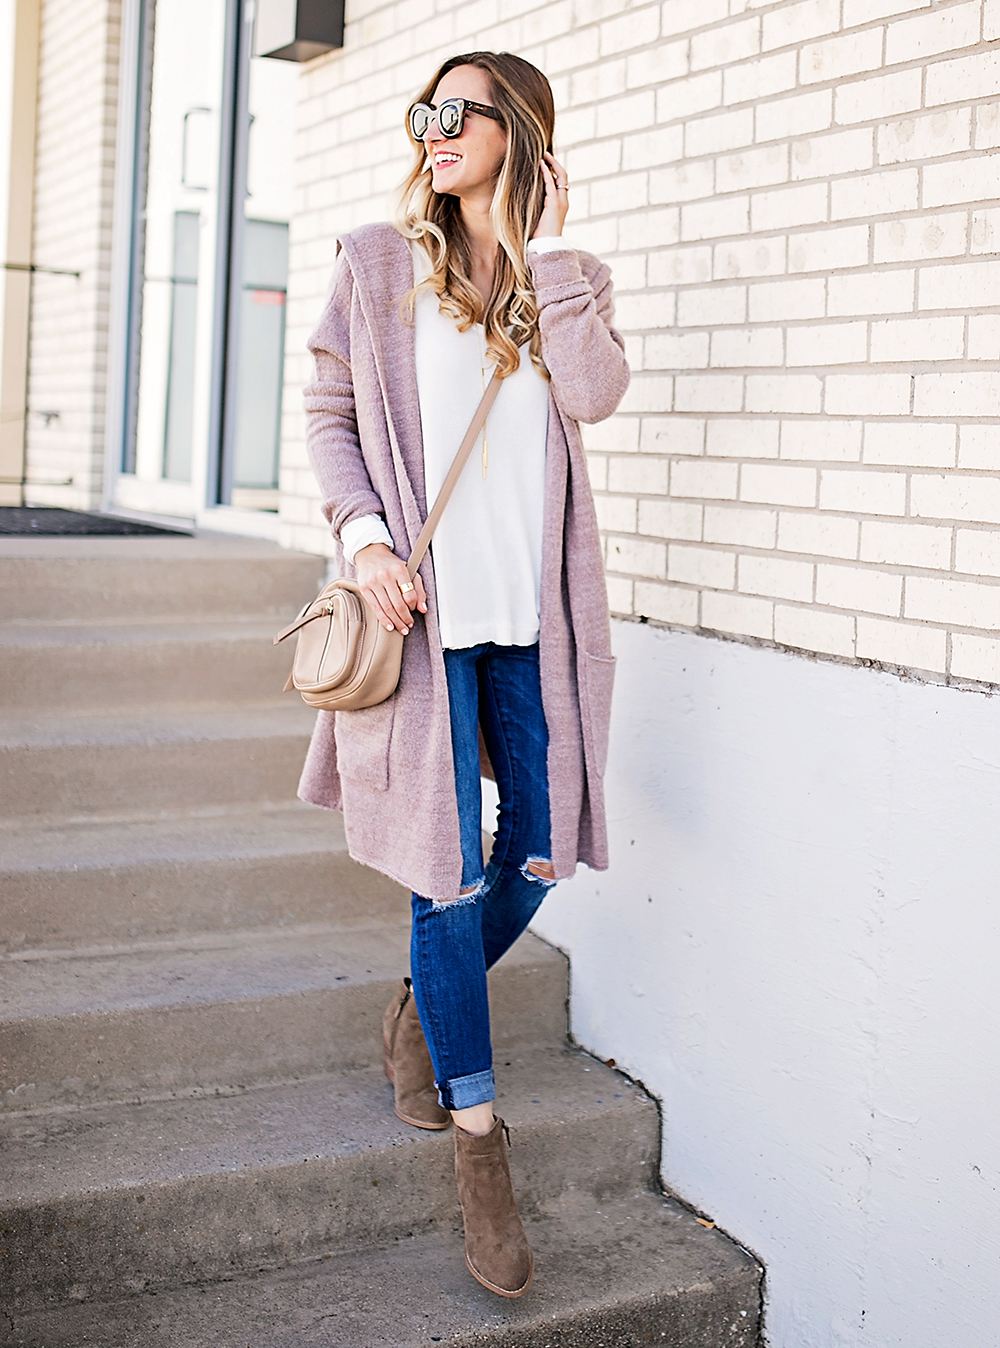 Dusty Pink Cardigan & Ankle Booties - LivvyLand | Austin Fashion ...